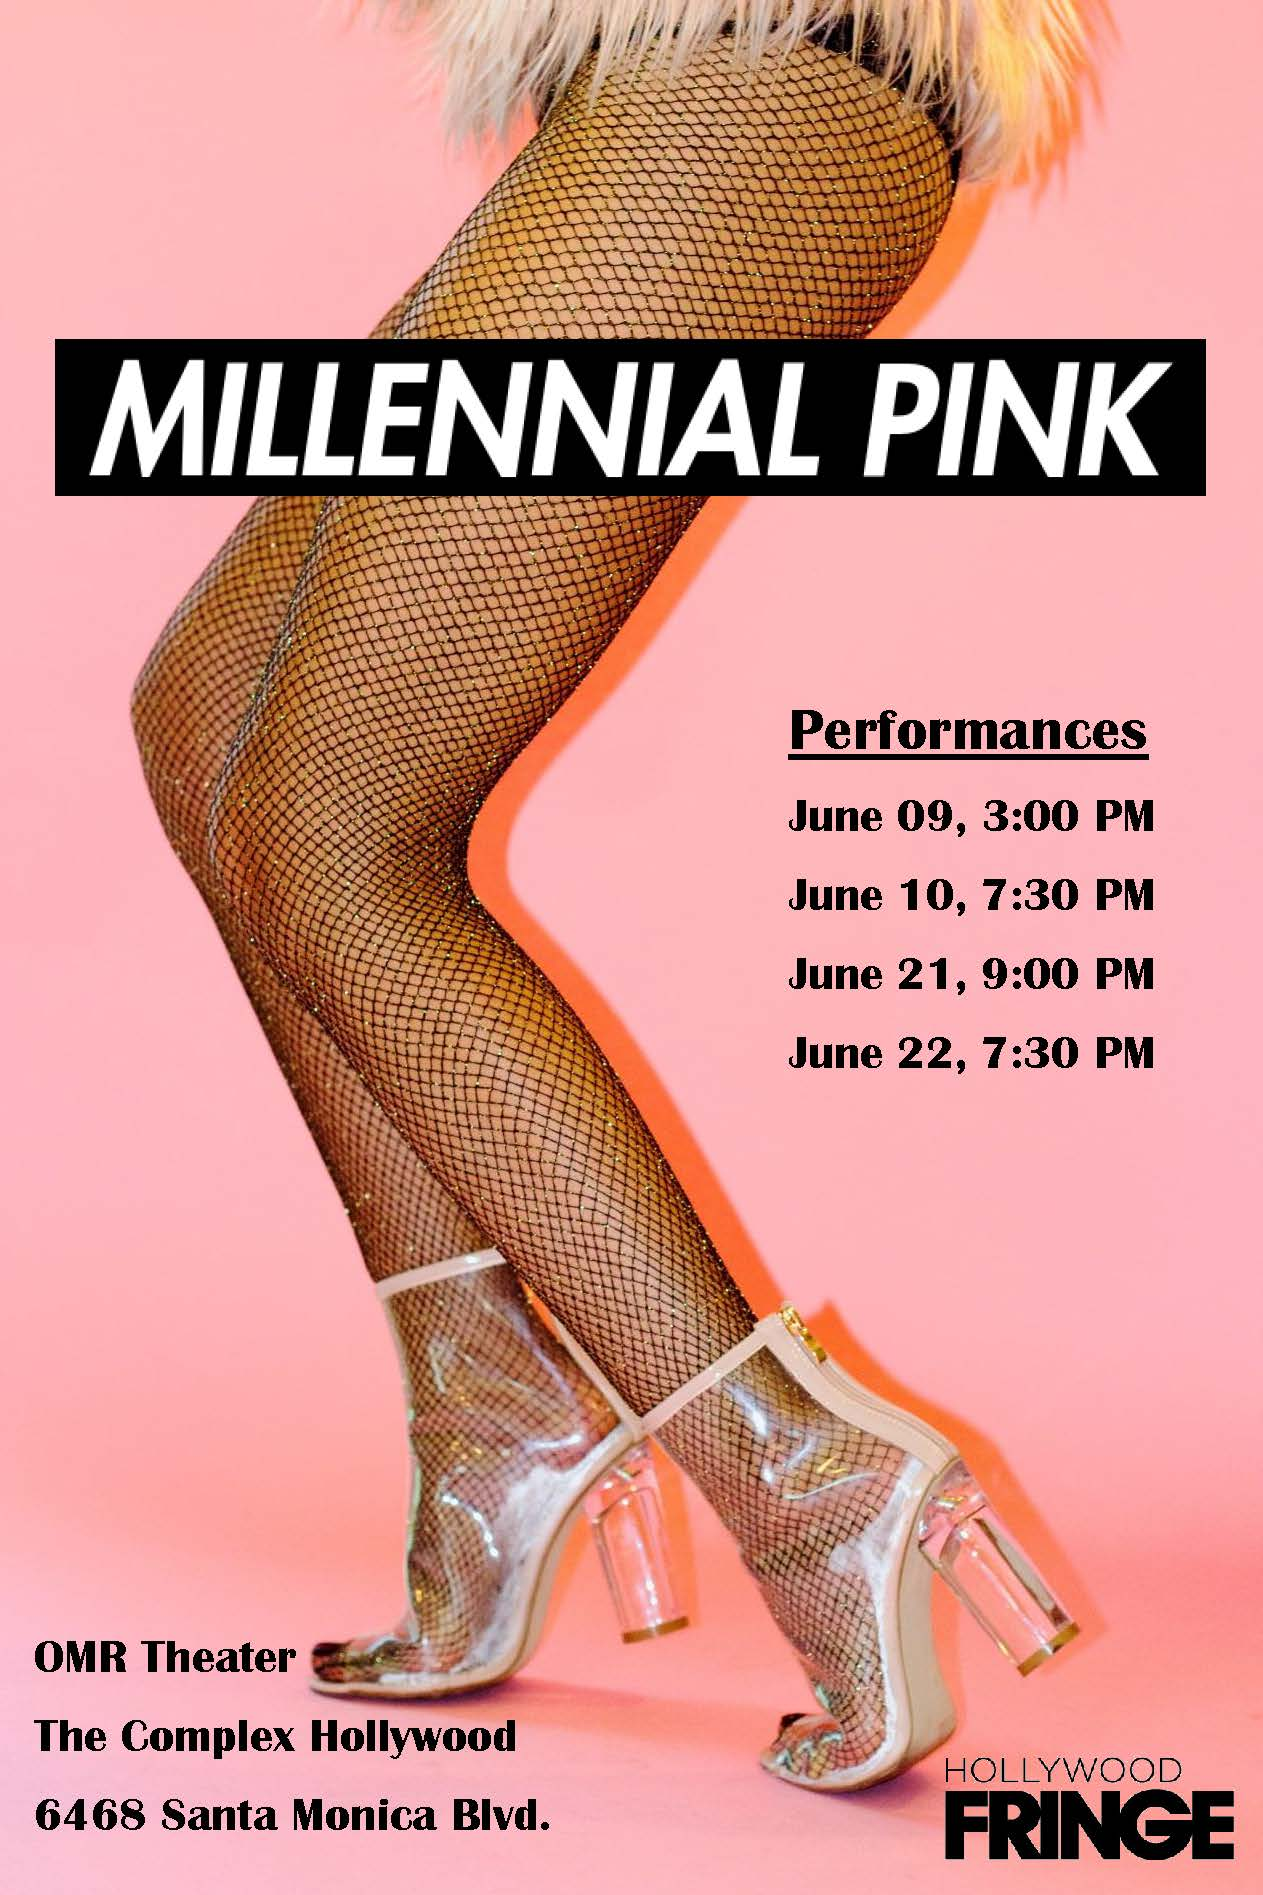 Buy tickets HERE - I'm joining this badass cast JUNE 9th - 10th! Come and support live theatre and the Hollywood Fringe!**$12 with promo code avocadotoast